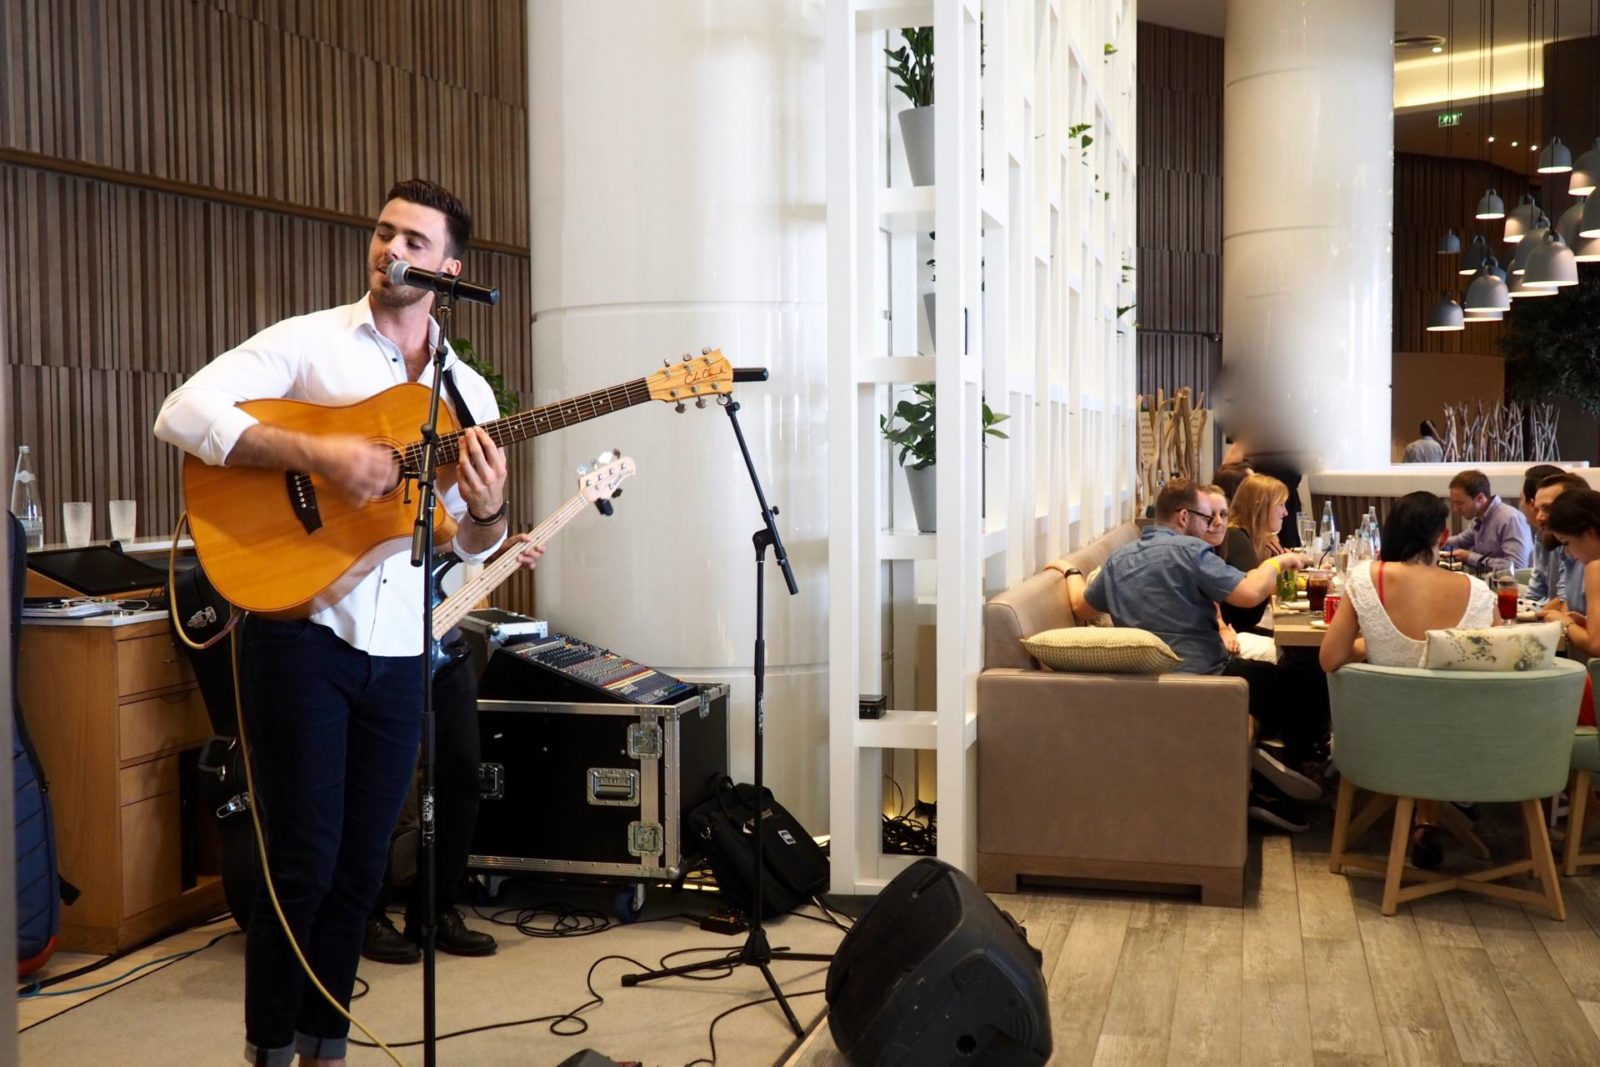 Live music Brunch at Brasserie 2.0 Le Royal Meridien Review